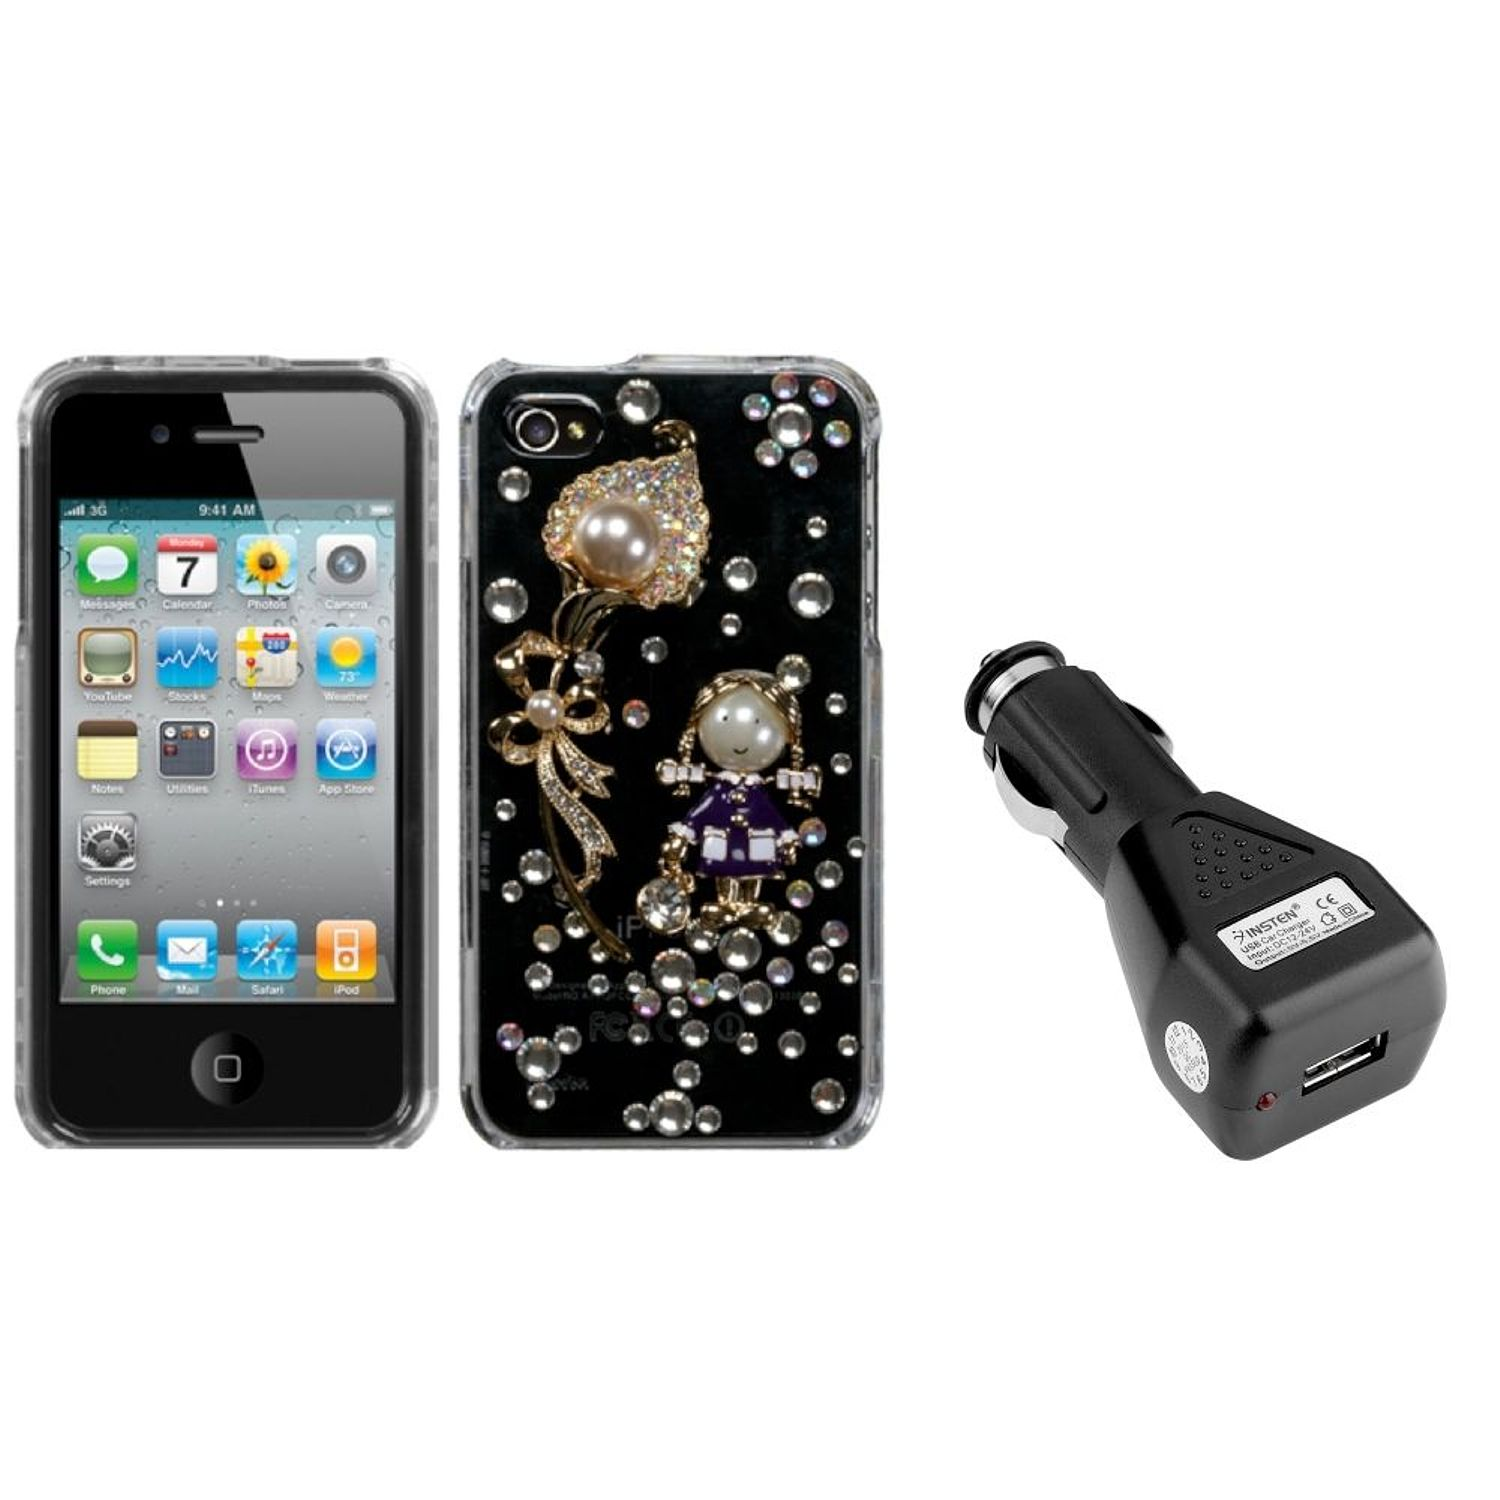 Insten Debby/The Pearl Flower Crystal 3D Case For iPhone 4 4S + USB Car Charger